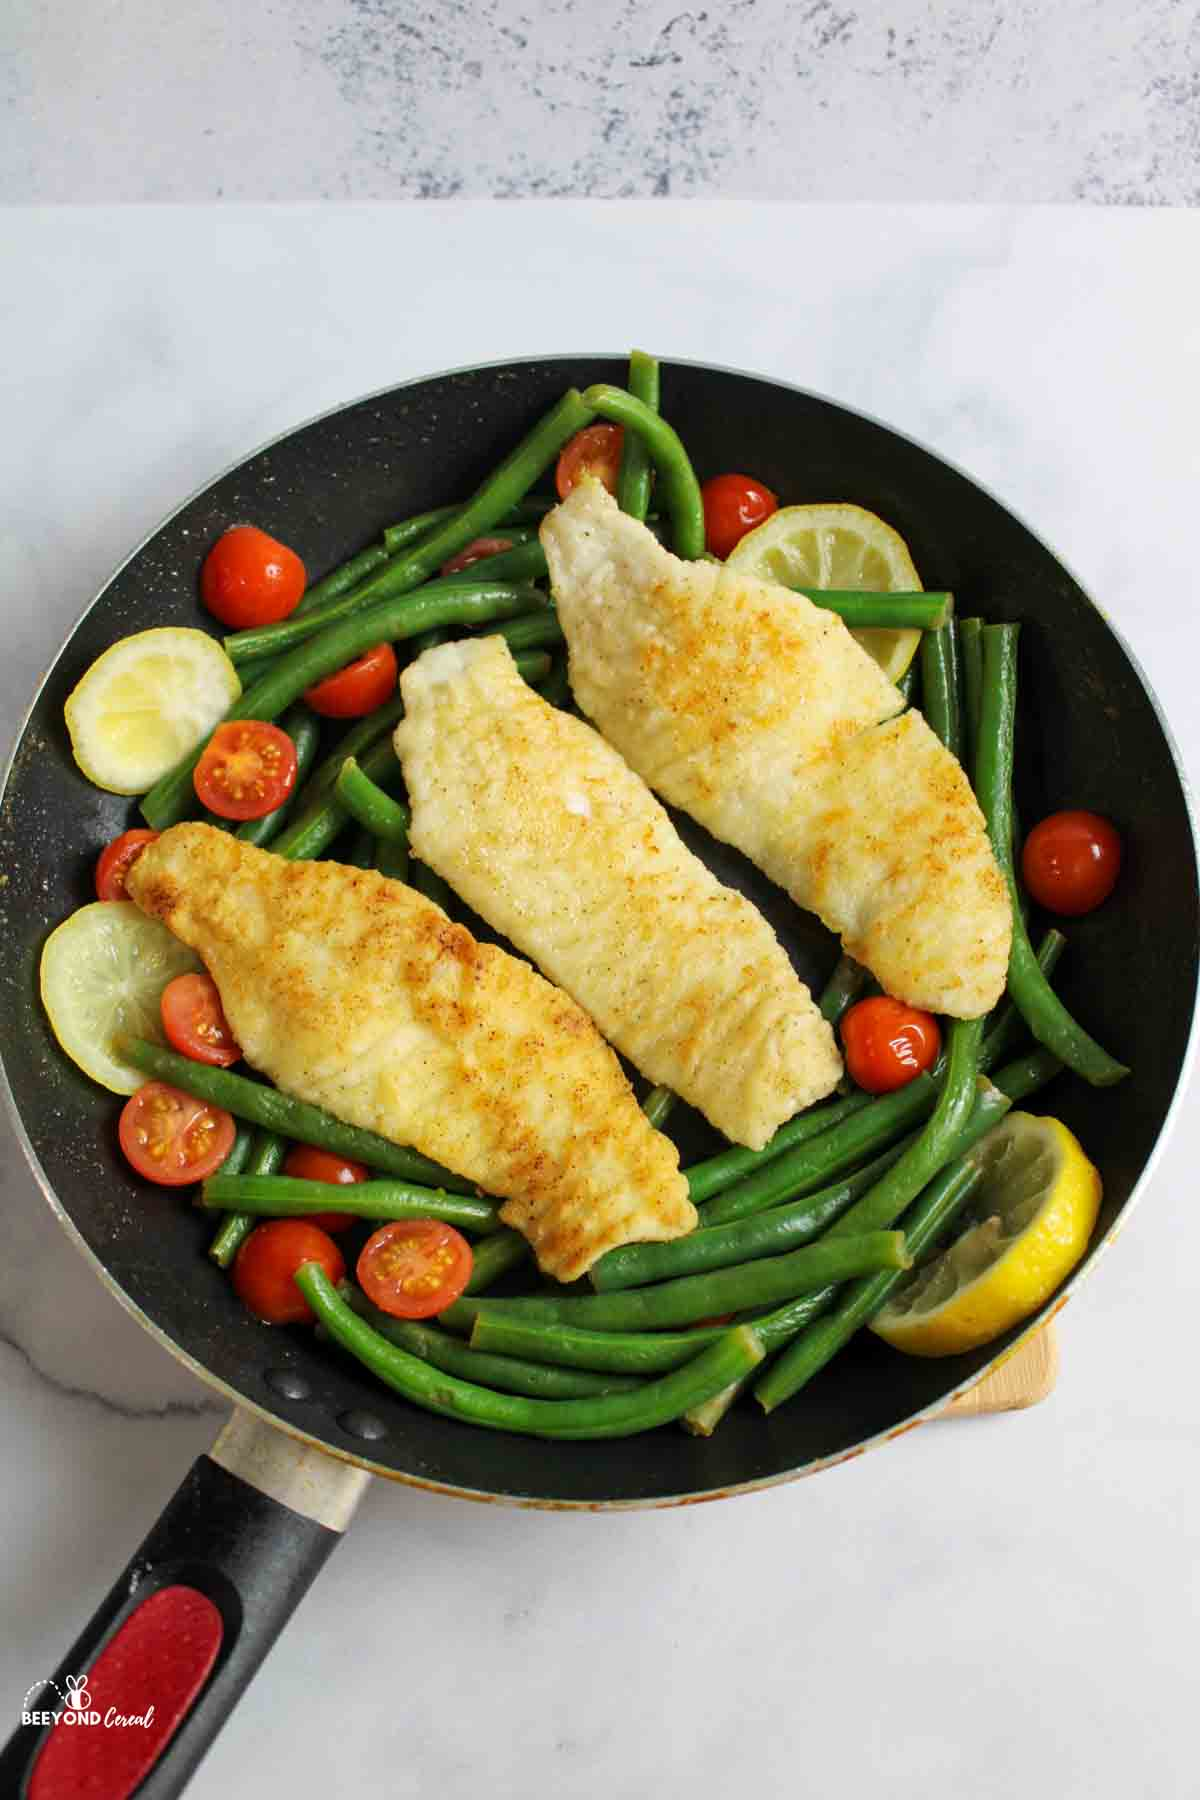 three tilapia fillets, green beans, cherry tomatoes and lemon slices in a skillet